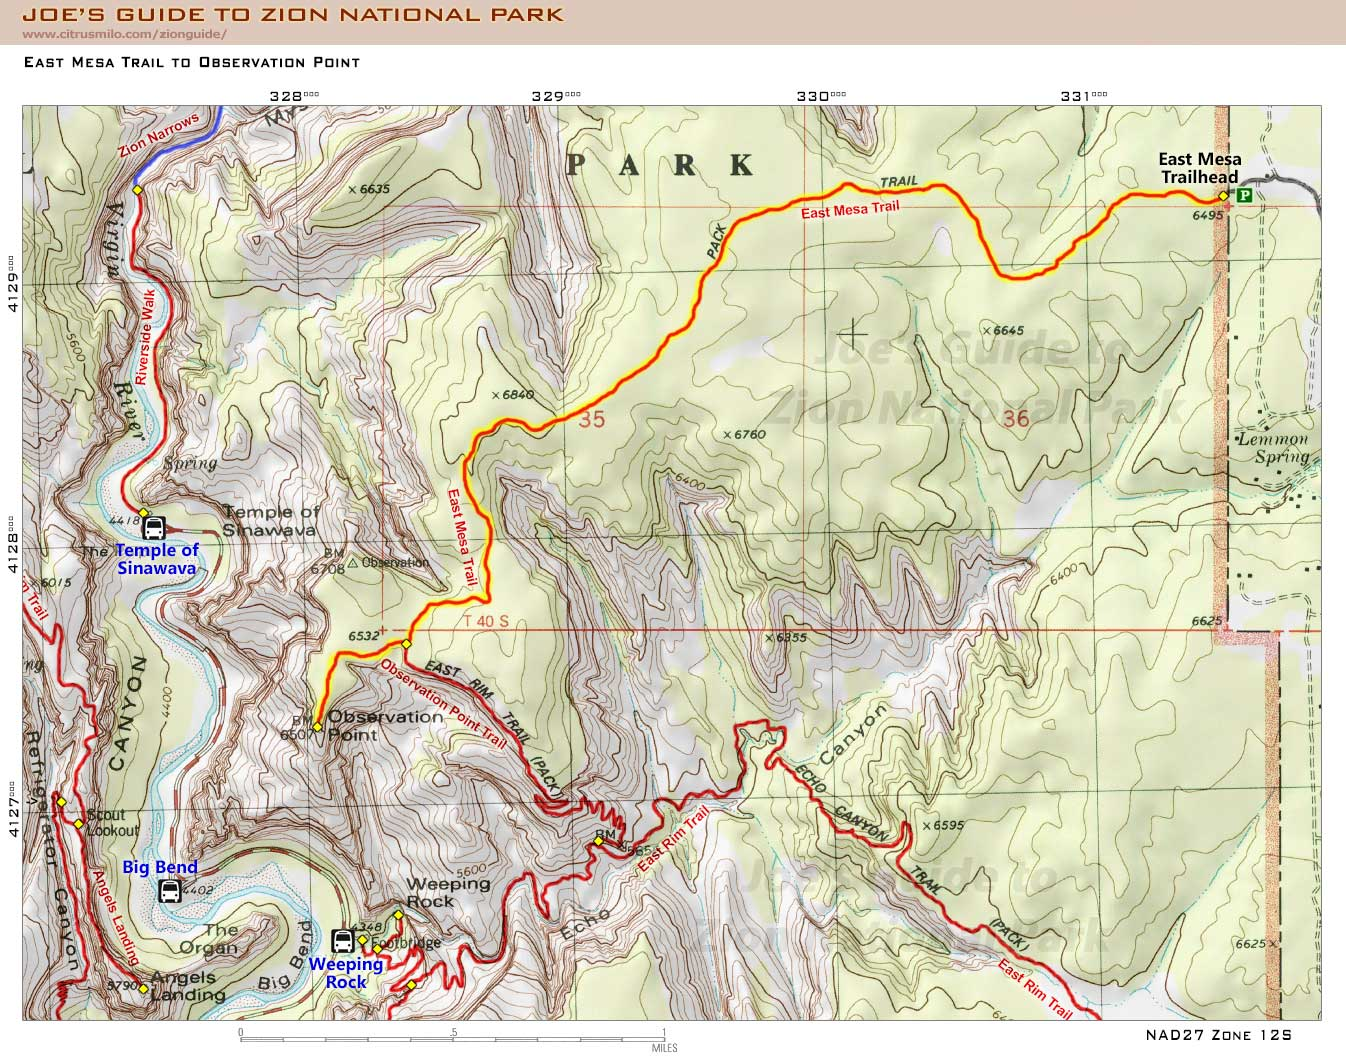 Joe Braun Topo Map For The East Mesa Trail To Observation Point